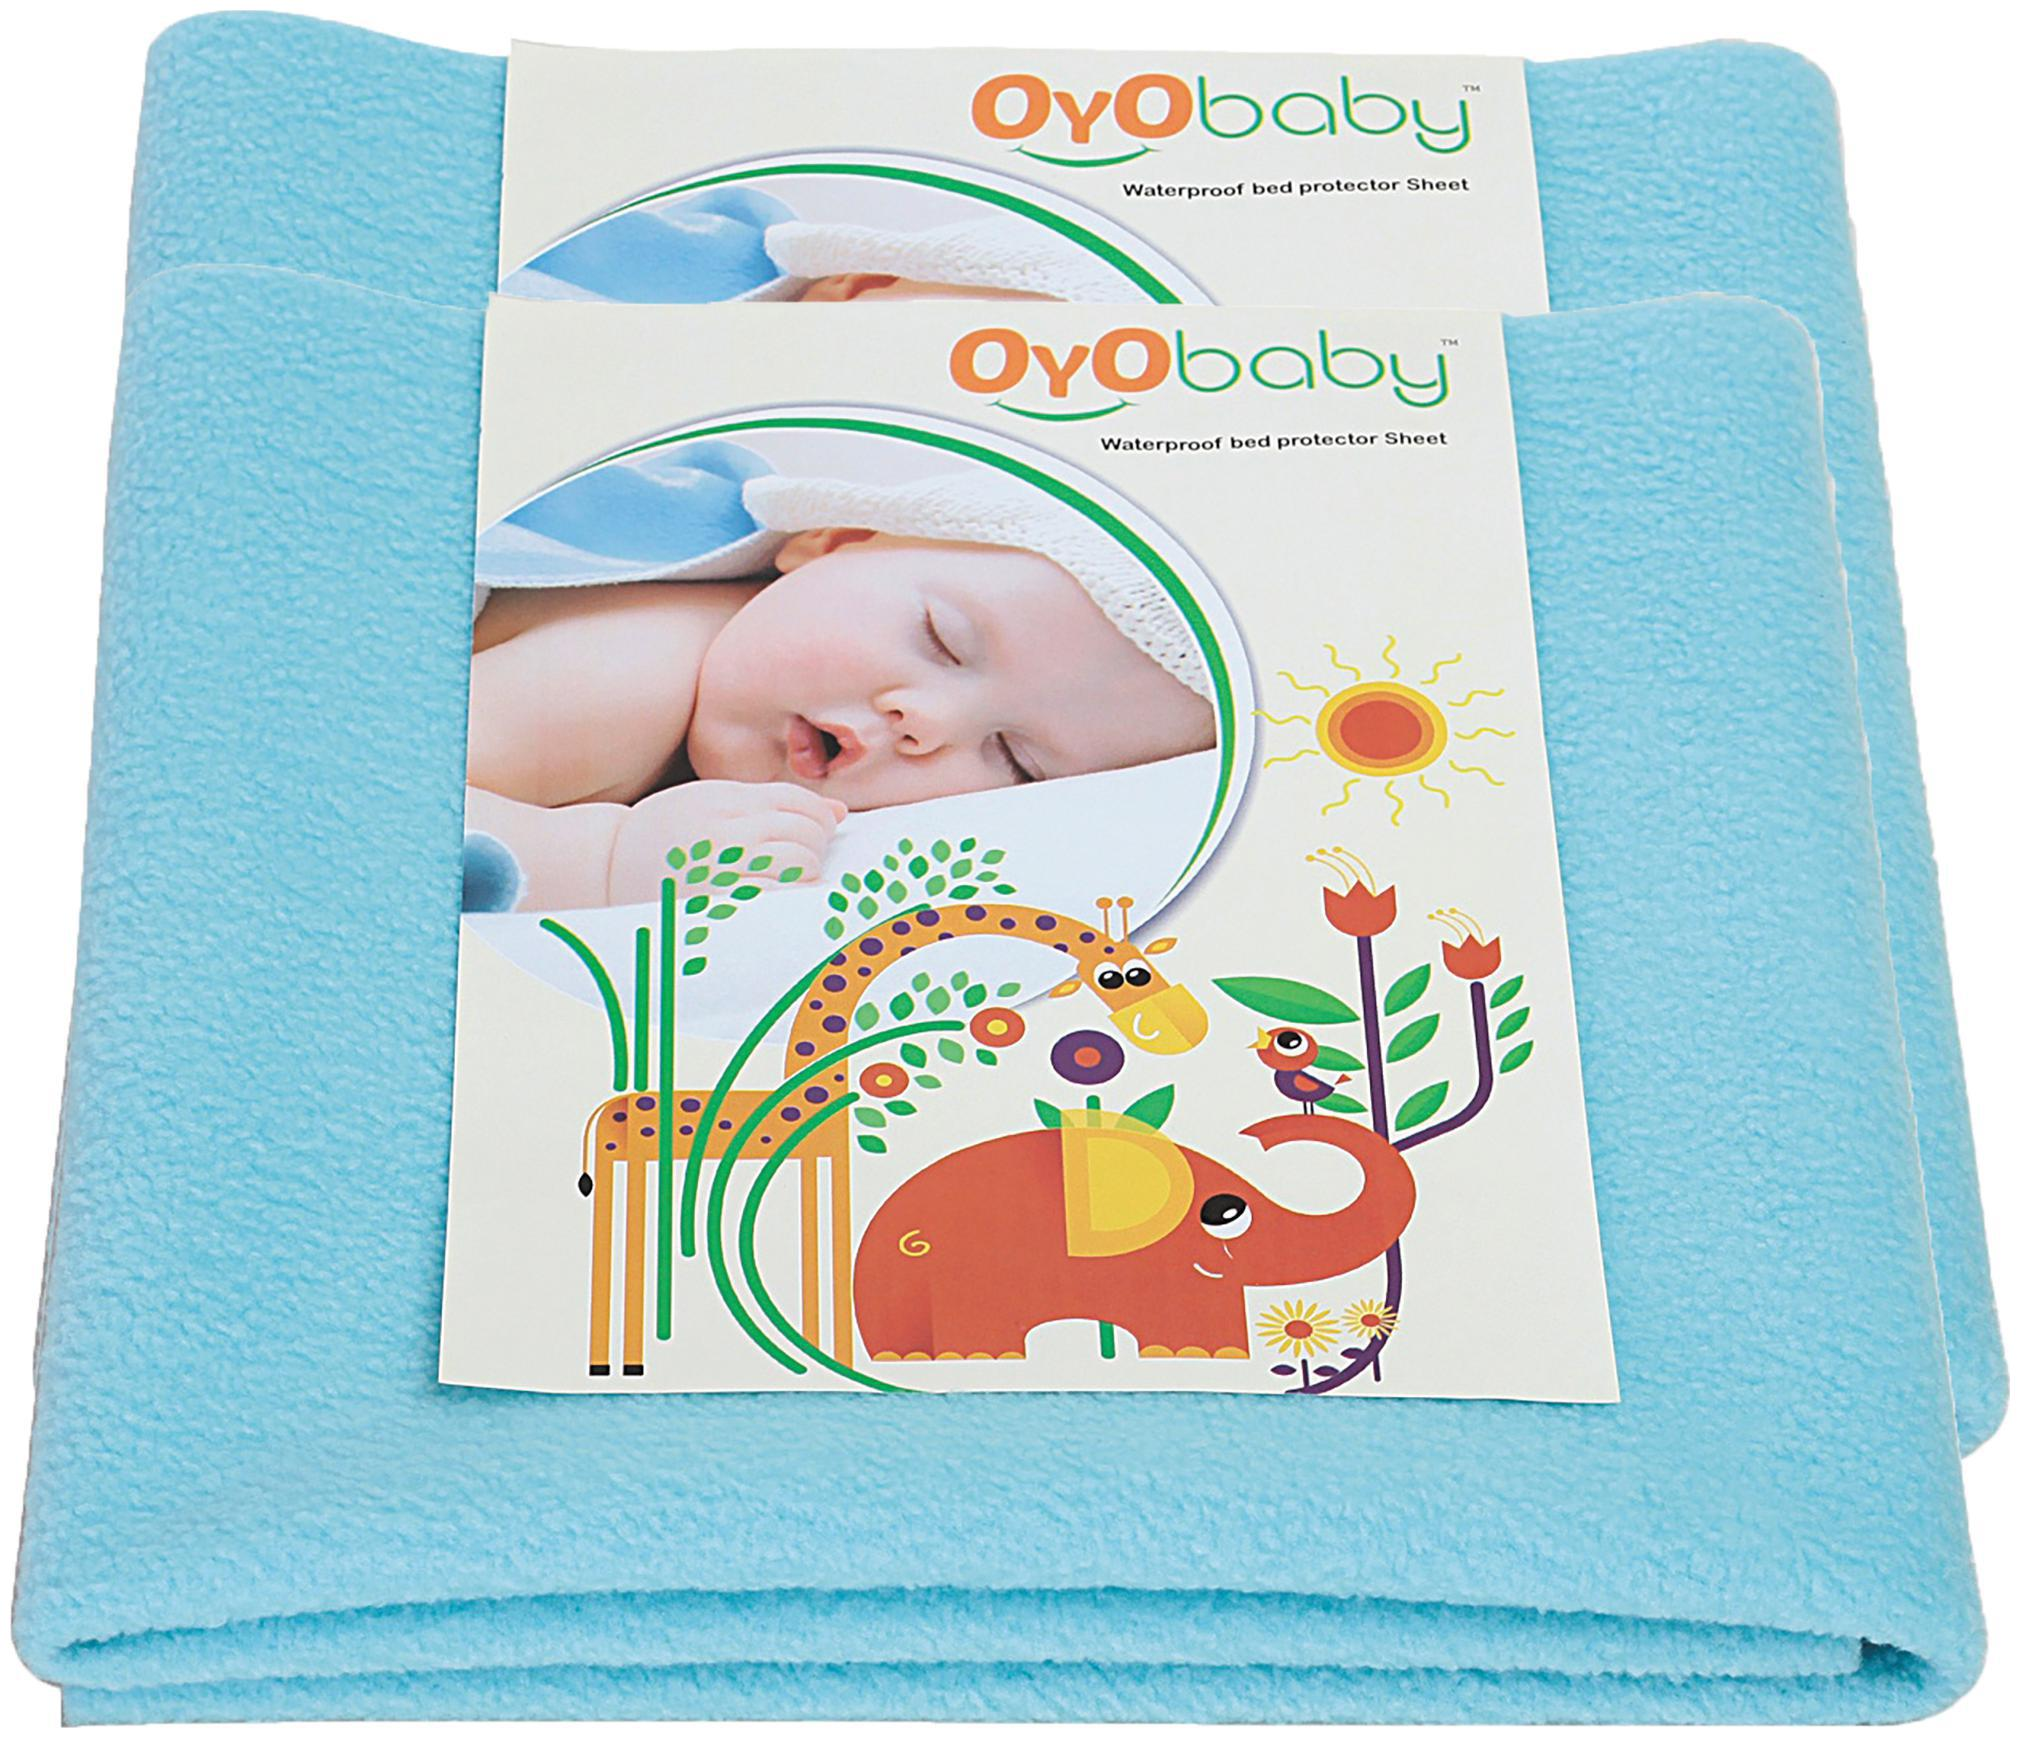 https://assetscdn1.paytm.com/images/catalog/product/F/FA/FASOYO-BABY-BABBABY1146844400CD01F/1573644835290_0.jpg